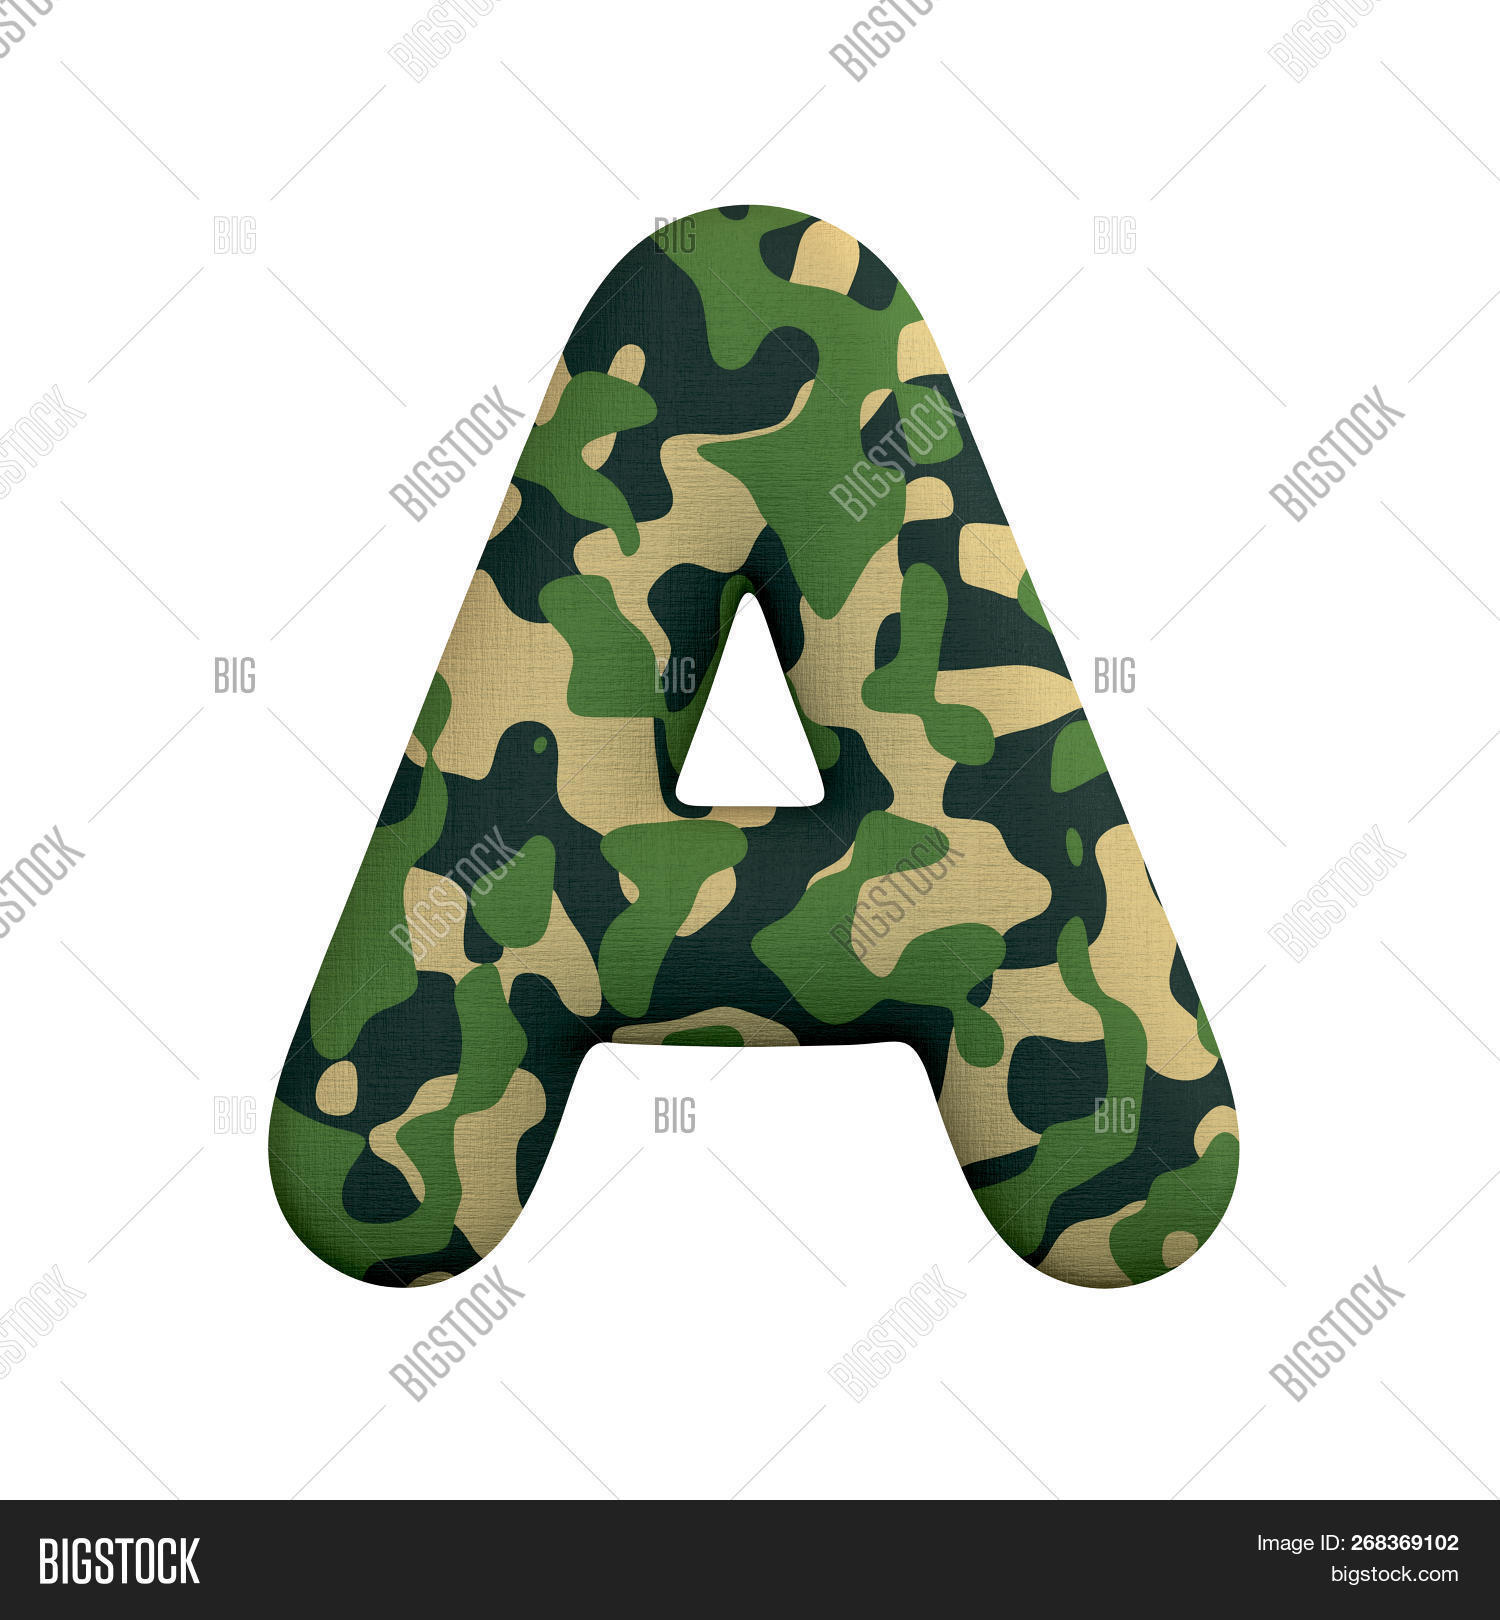 Army Letter - Capital Image & Photo (Free Trial)